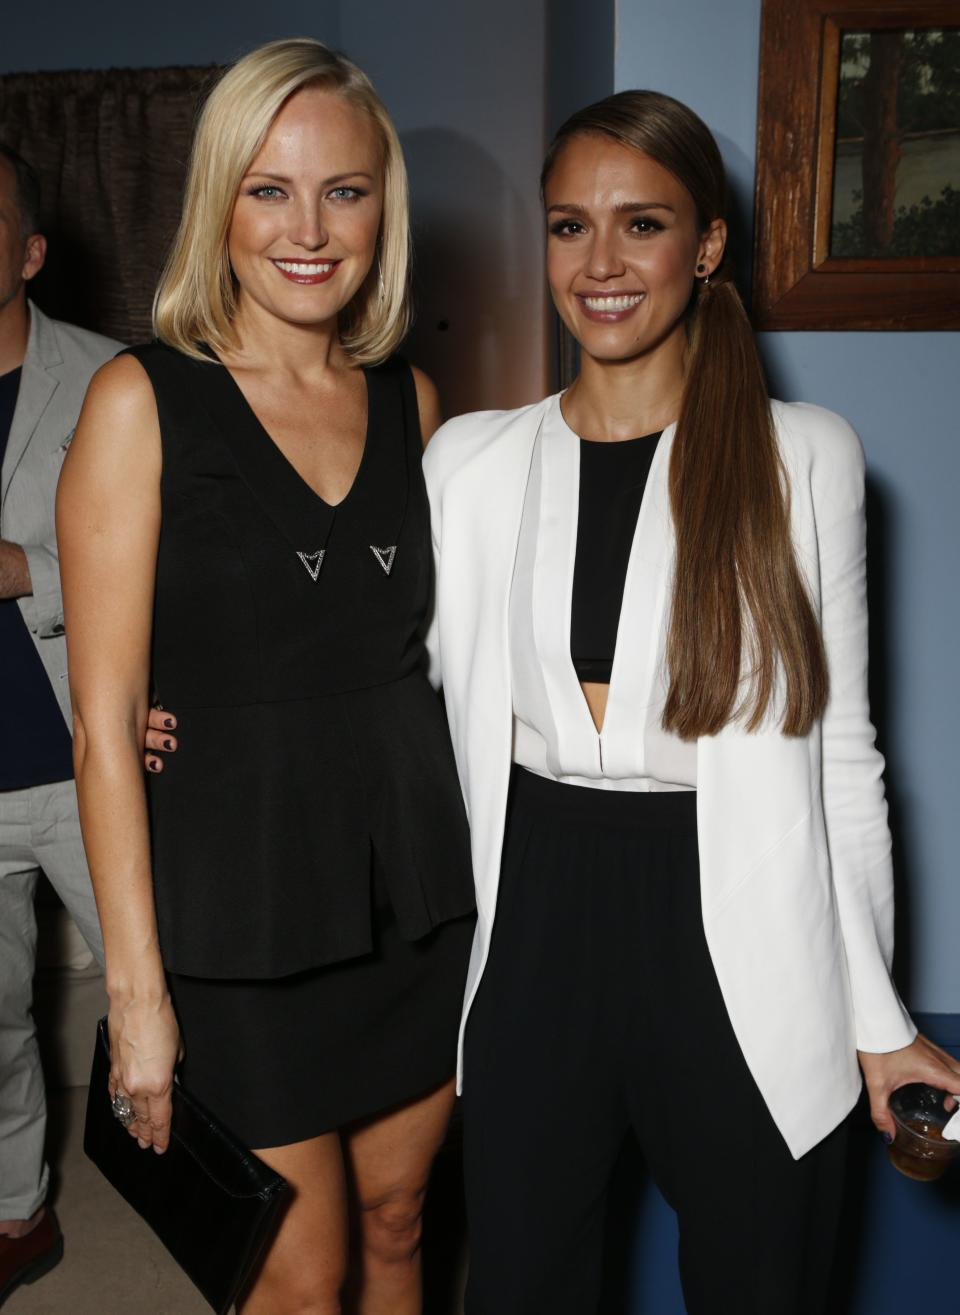 IMAGE DISTRIBUTED FOR  ENVIRONMENTAL MEDIA ASSOCIATION - Malin Akerman, left, and Jessica Alba are seen backstage at the 22nd Annual Environmental Media Awards on Saturday Sept. 29, 2012, at Warner Bros. Studios in Burbank, Calif. (Photo by Todd Williamson/Invision for Environmental Media Association/AP Images)